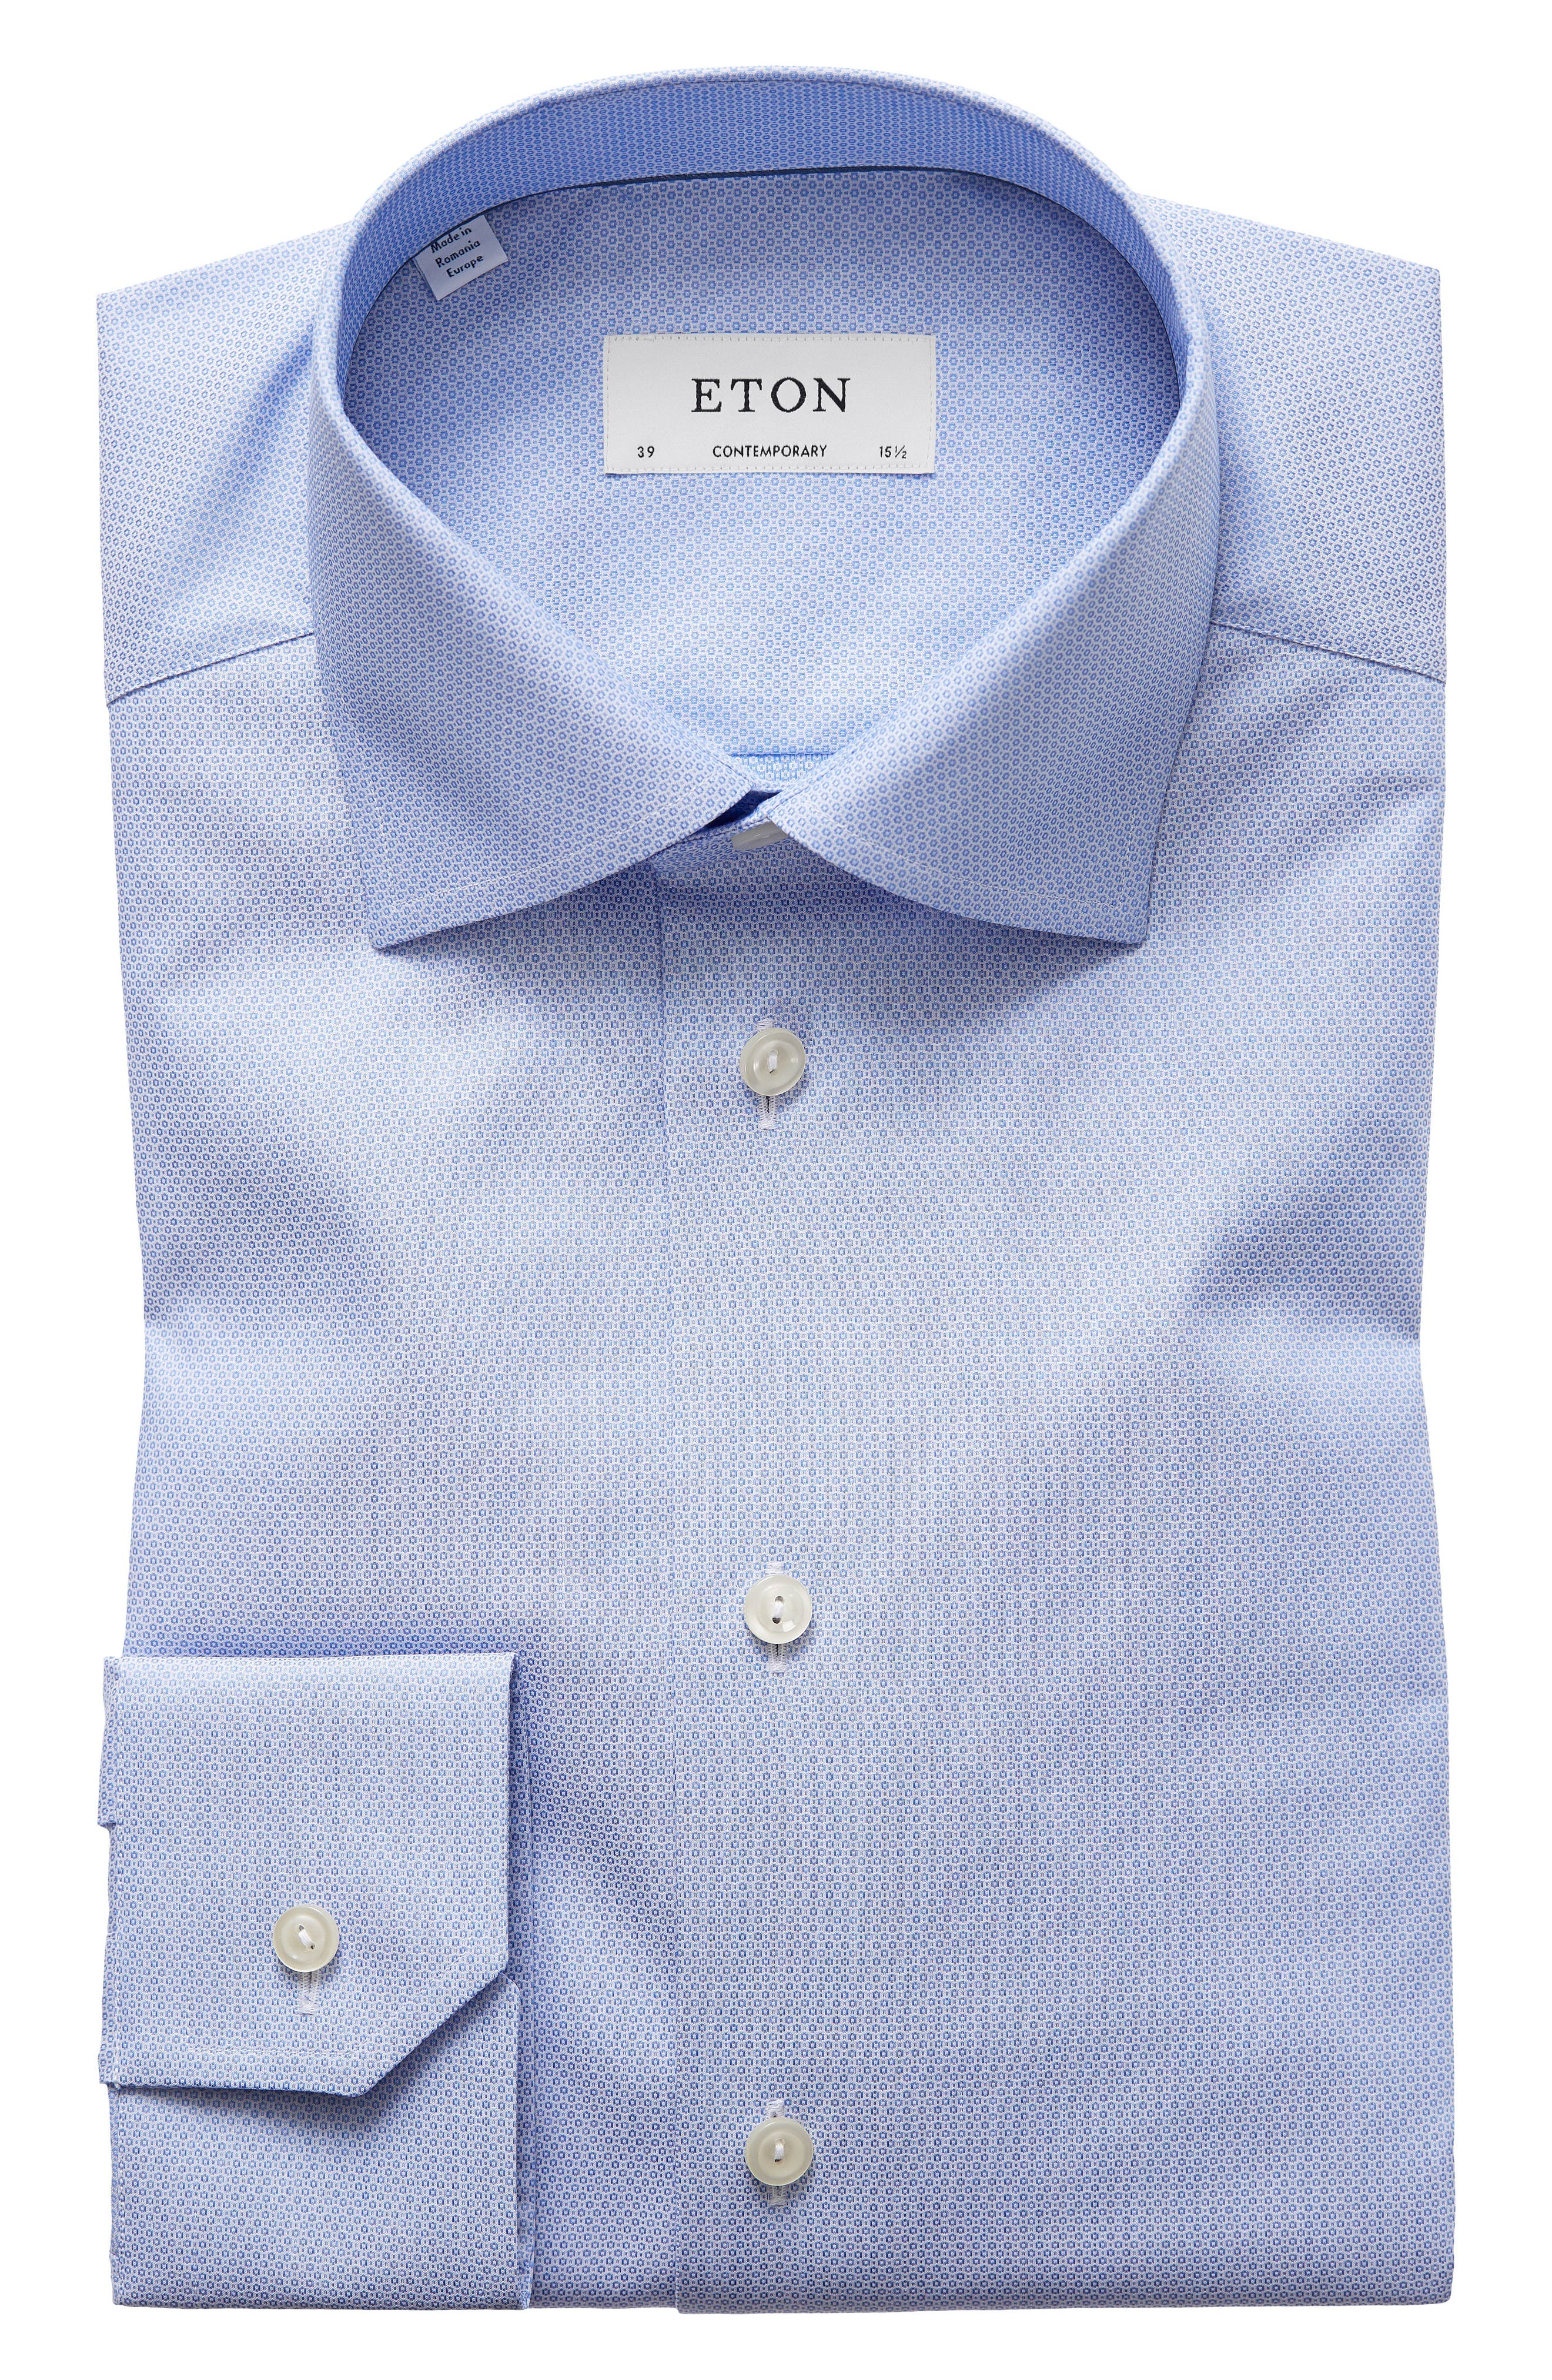 Contemporary Fit Textured Solid Dress Shirt,                             Alternate thumbnail 3, color,